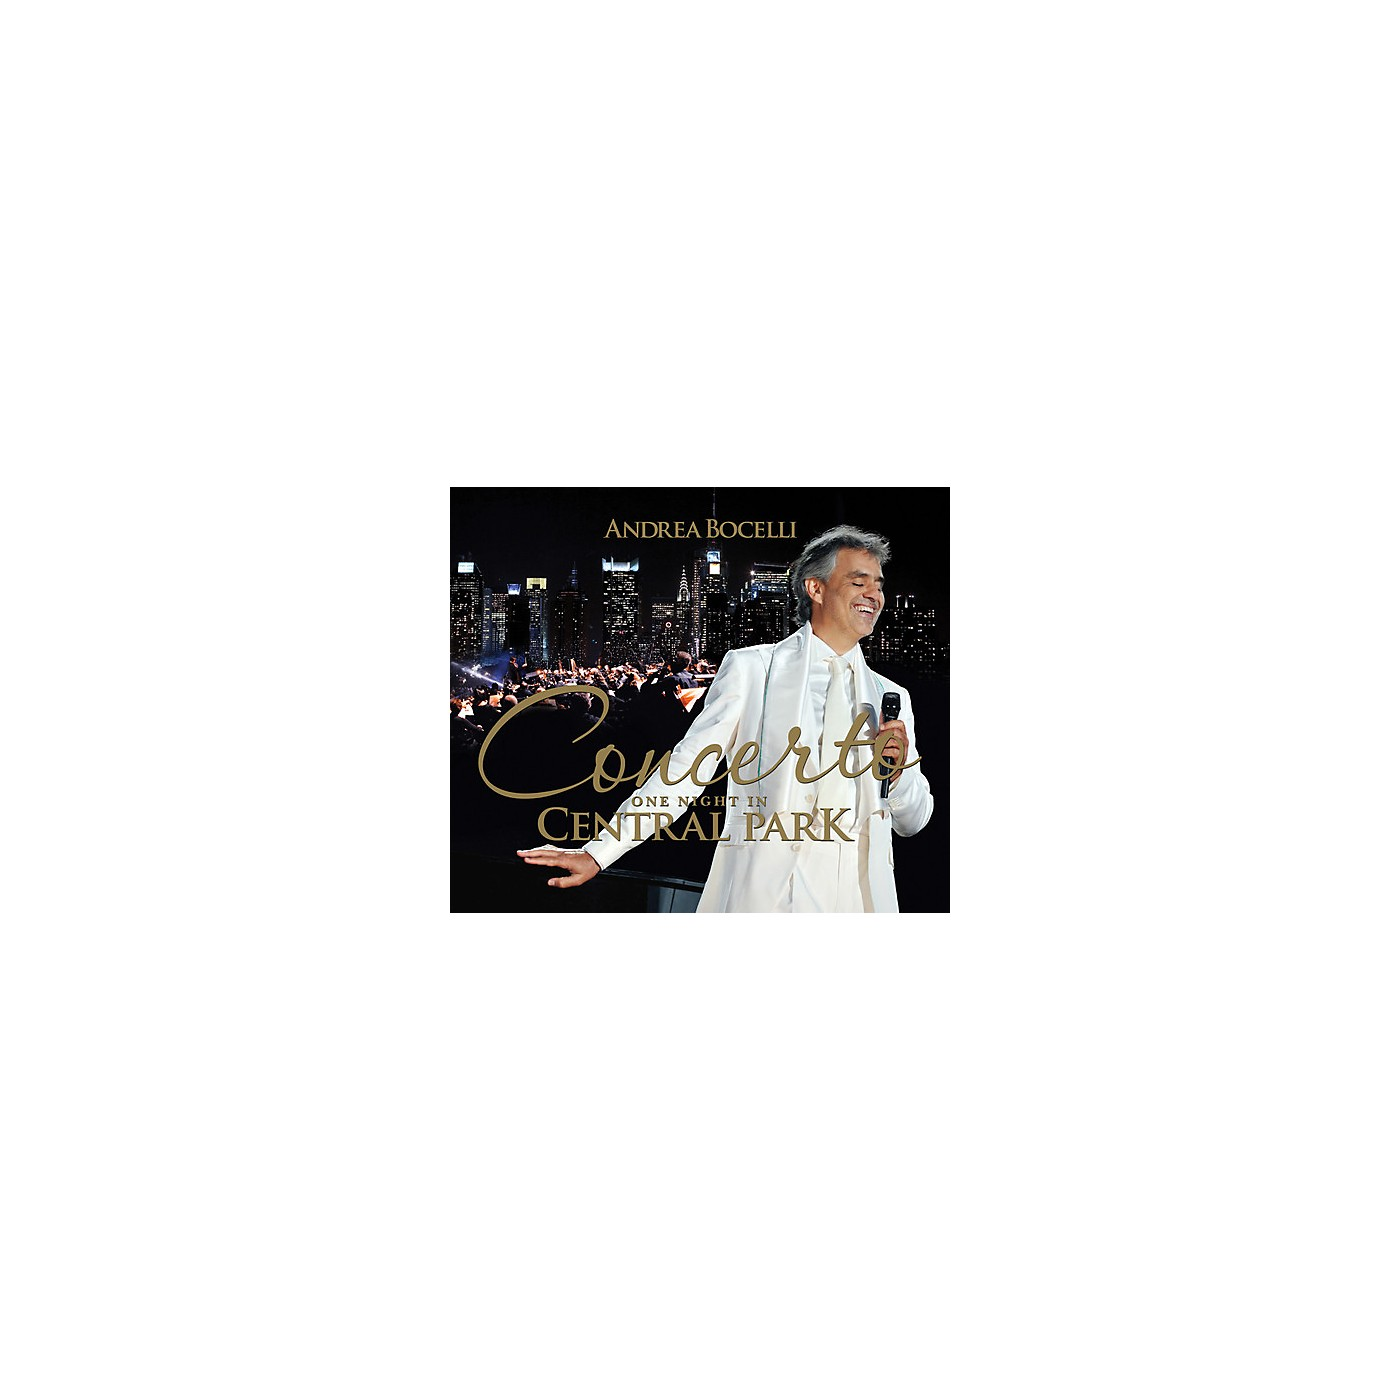 Alliance Andrea Bocelli - Concerto One Night in Central Park (CD) thumbnail